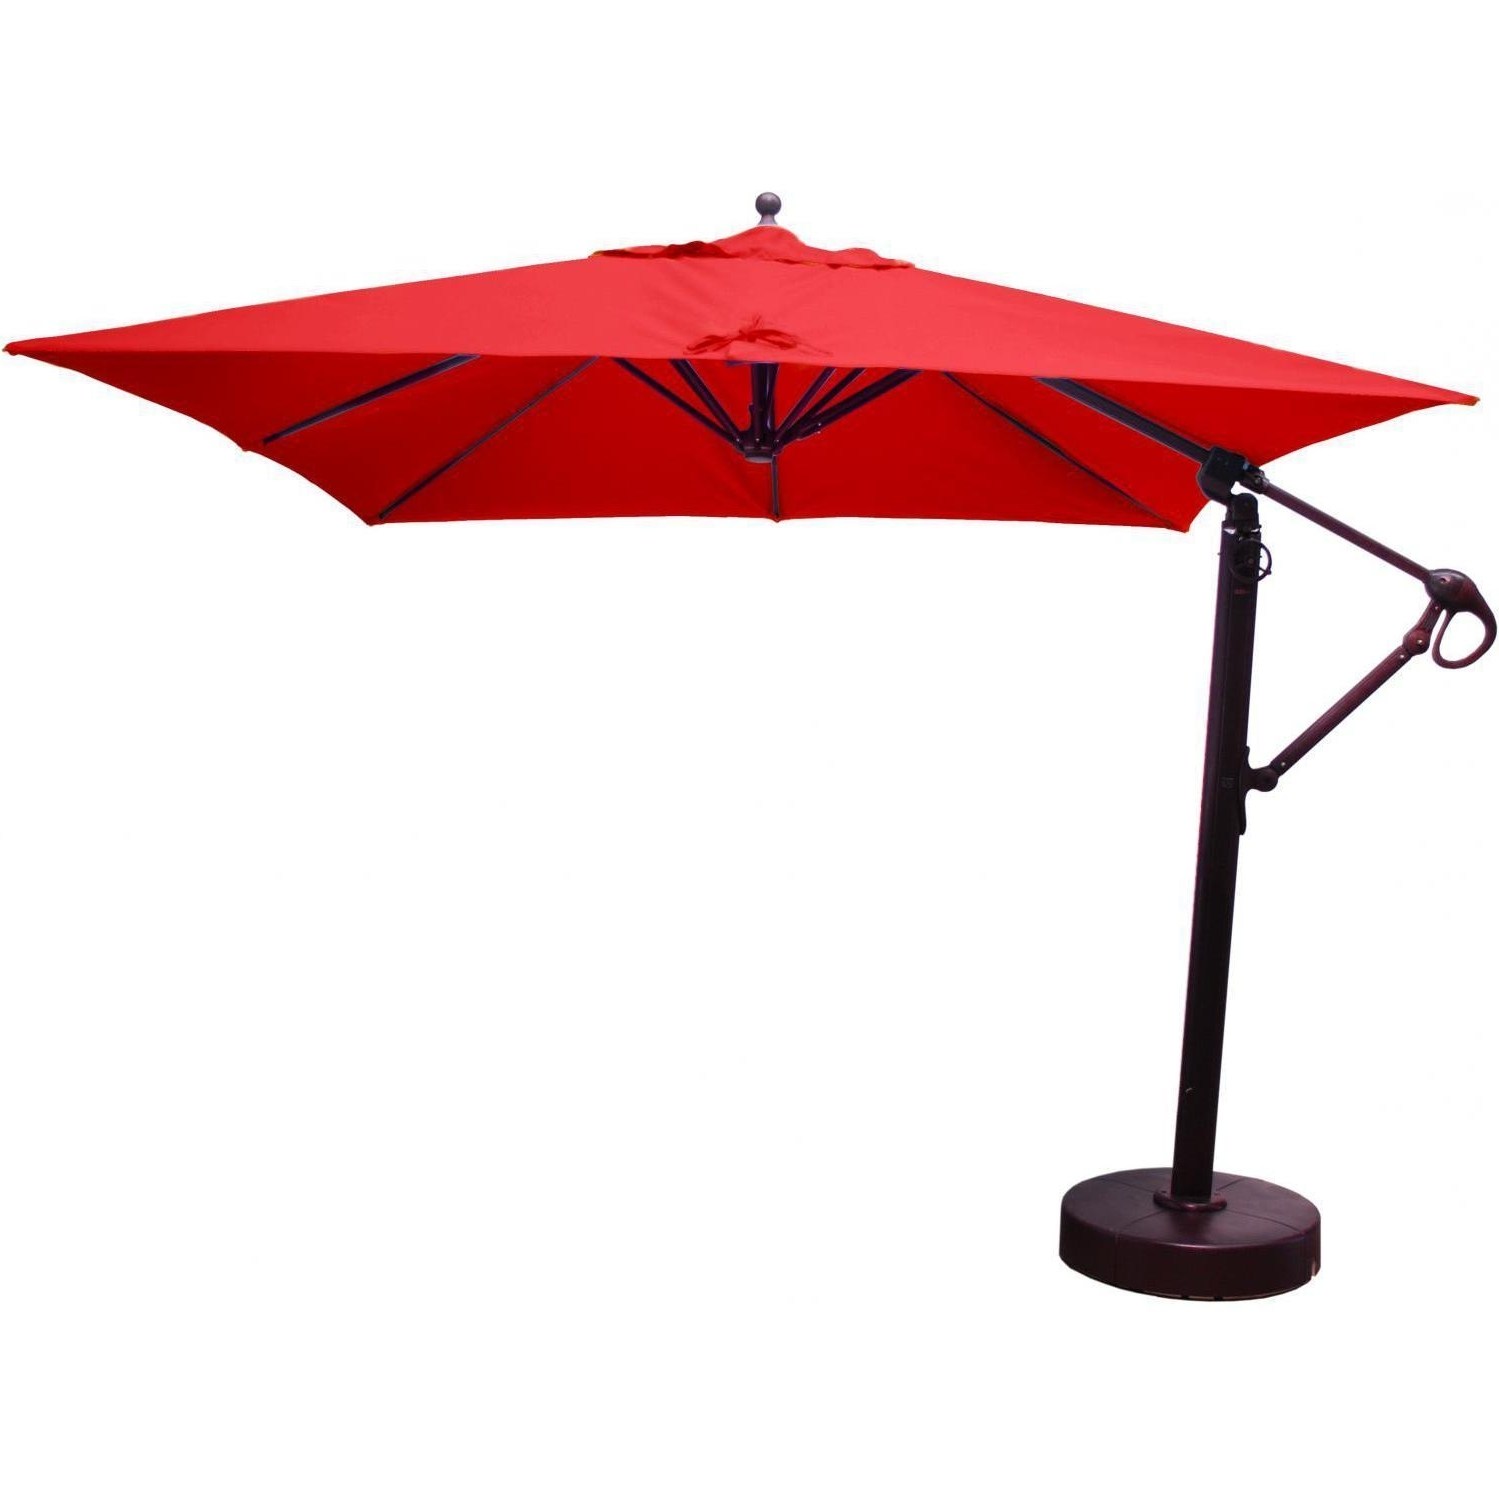 Square Patio Umbrellas Throughout Most Recently Released Galtech 10 Ft Aluminum Square Cantilever Patio Umbrella With Easy (View 15 of 20)